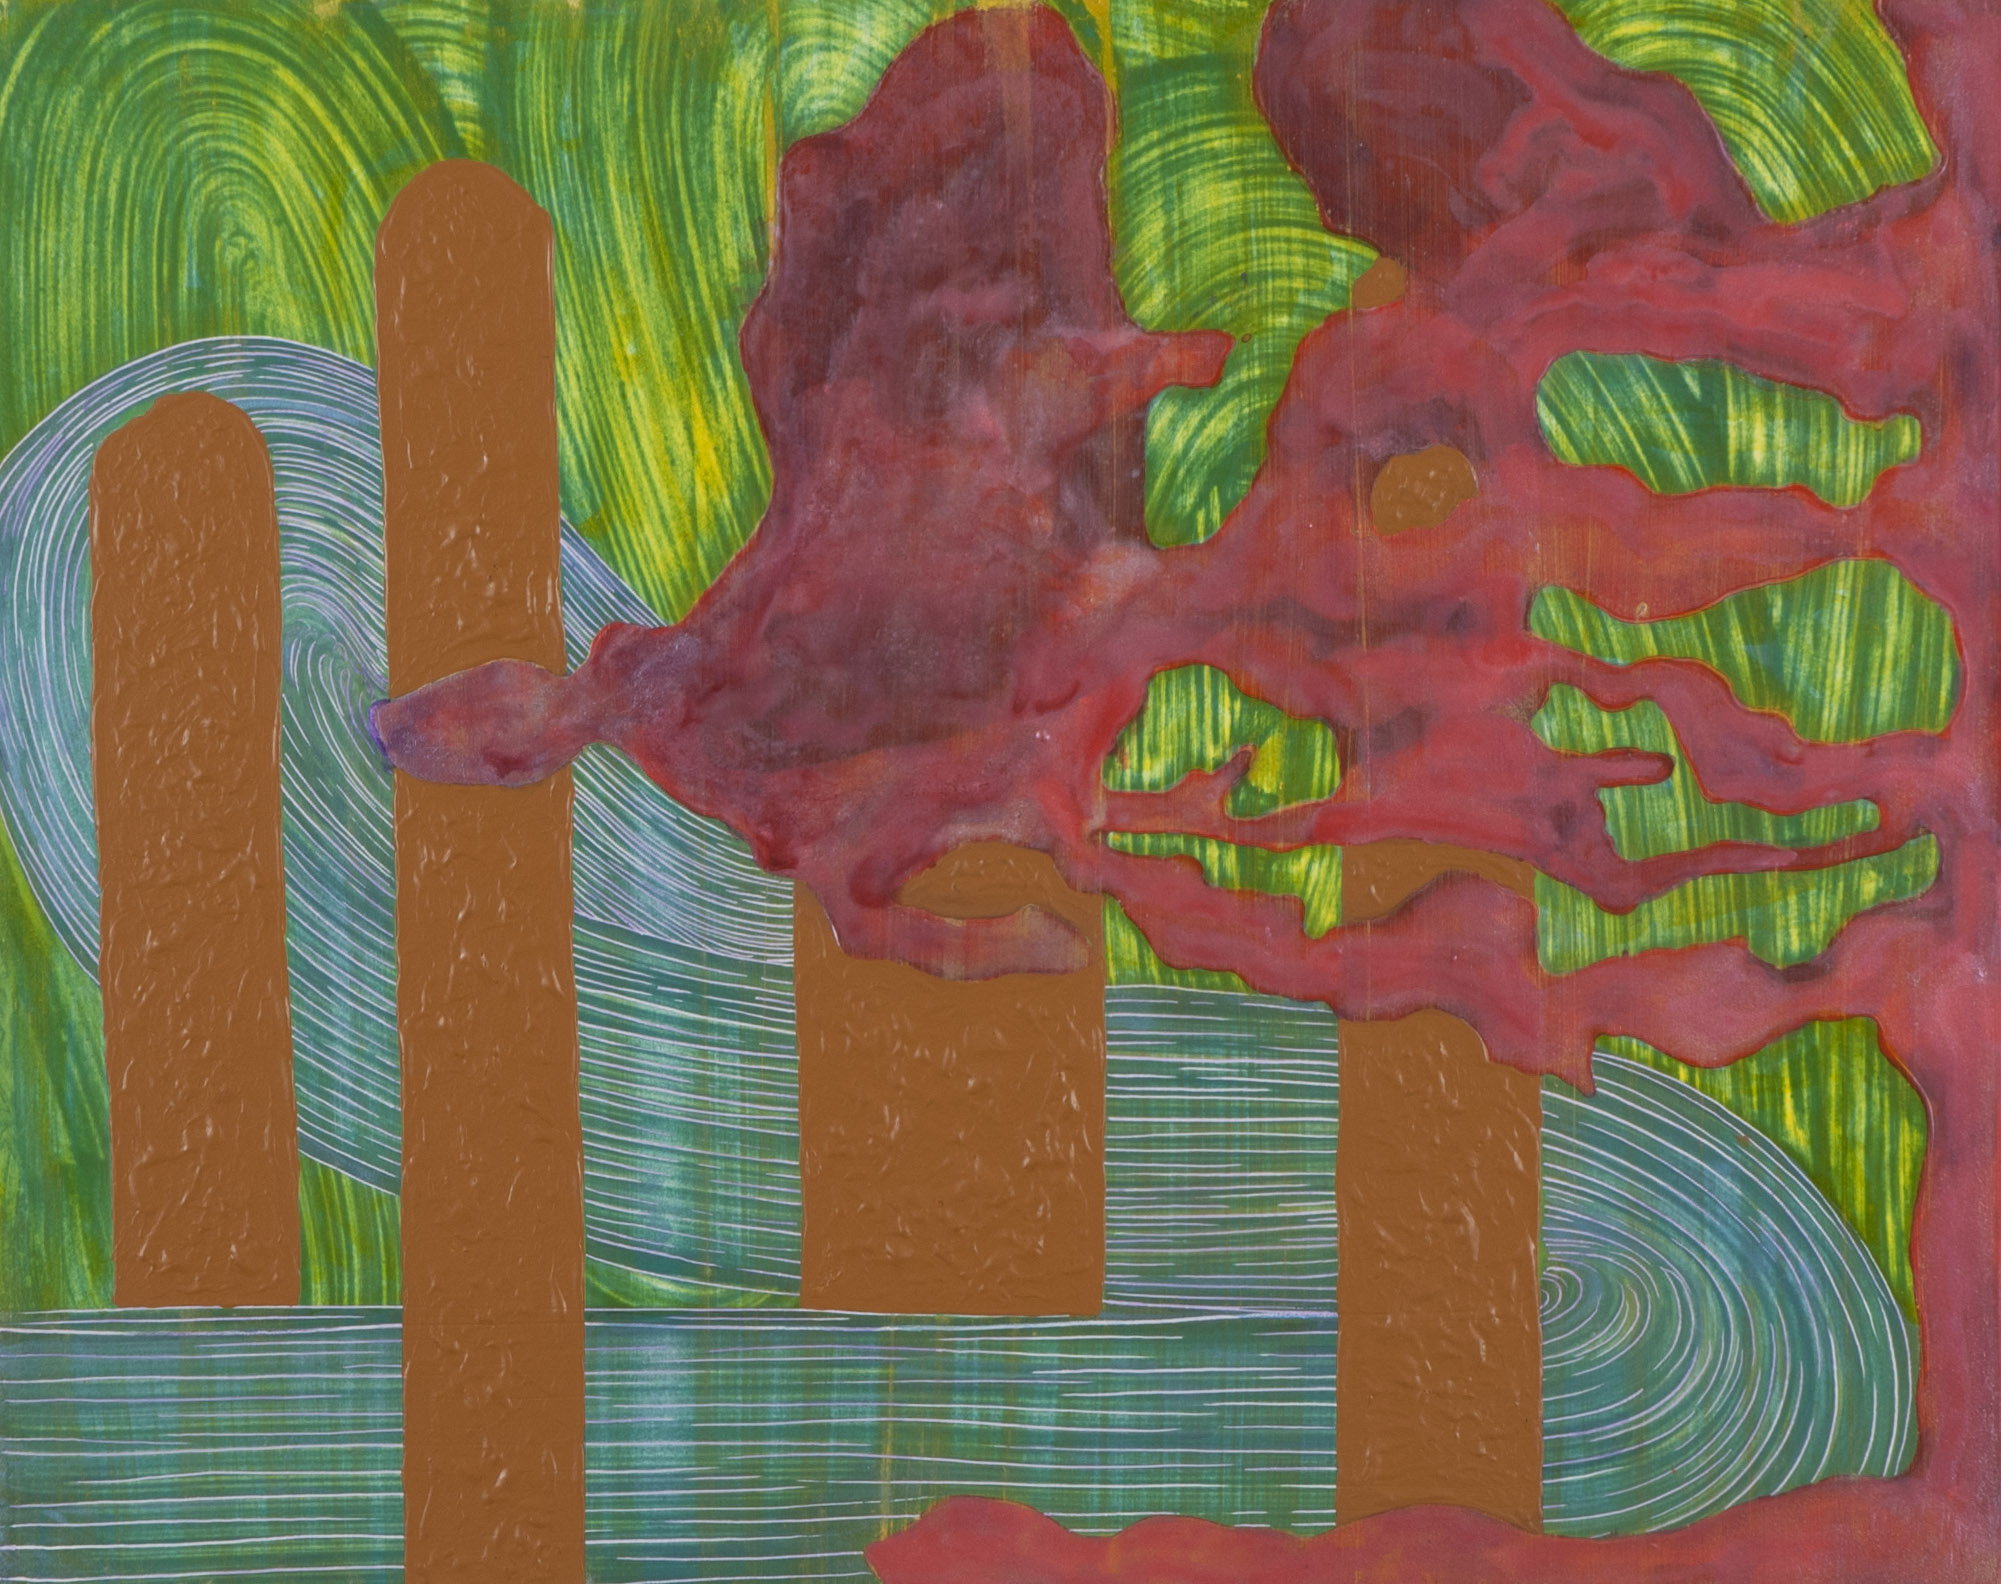 Pink_Brown_Green 'scape   2013  acrylic  16 X 20""